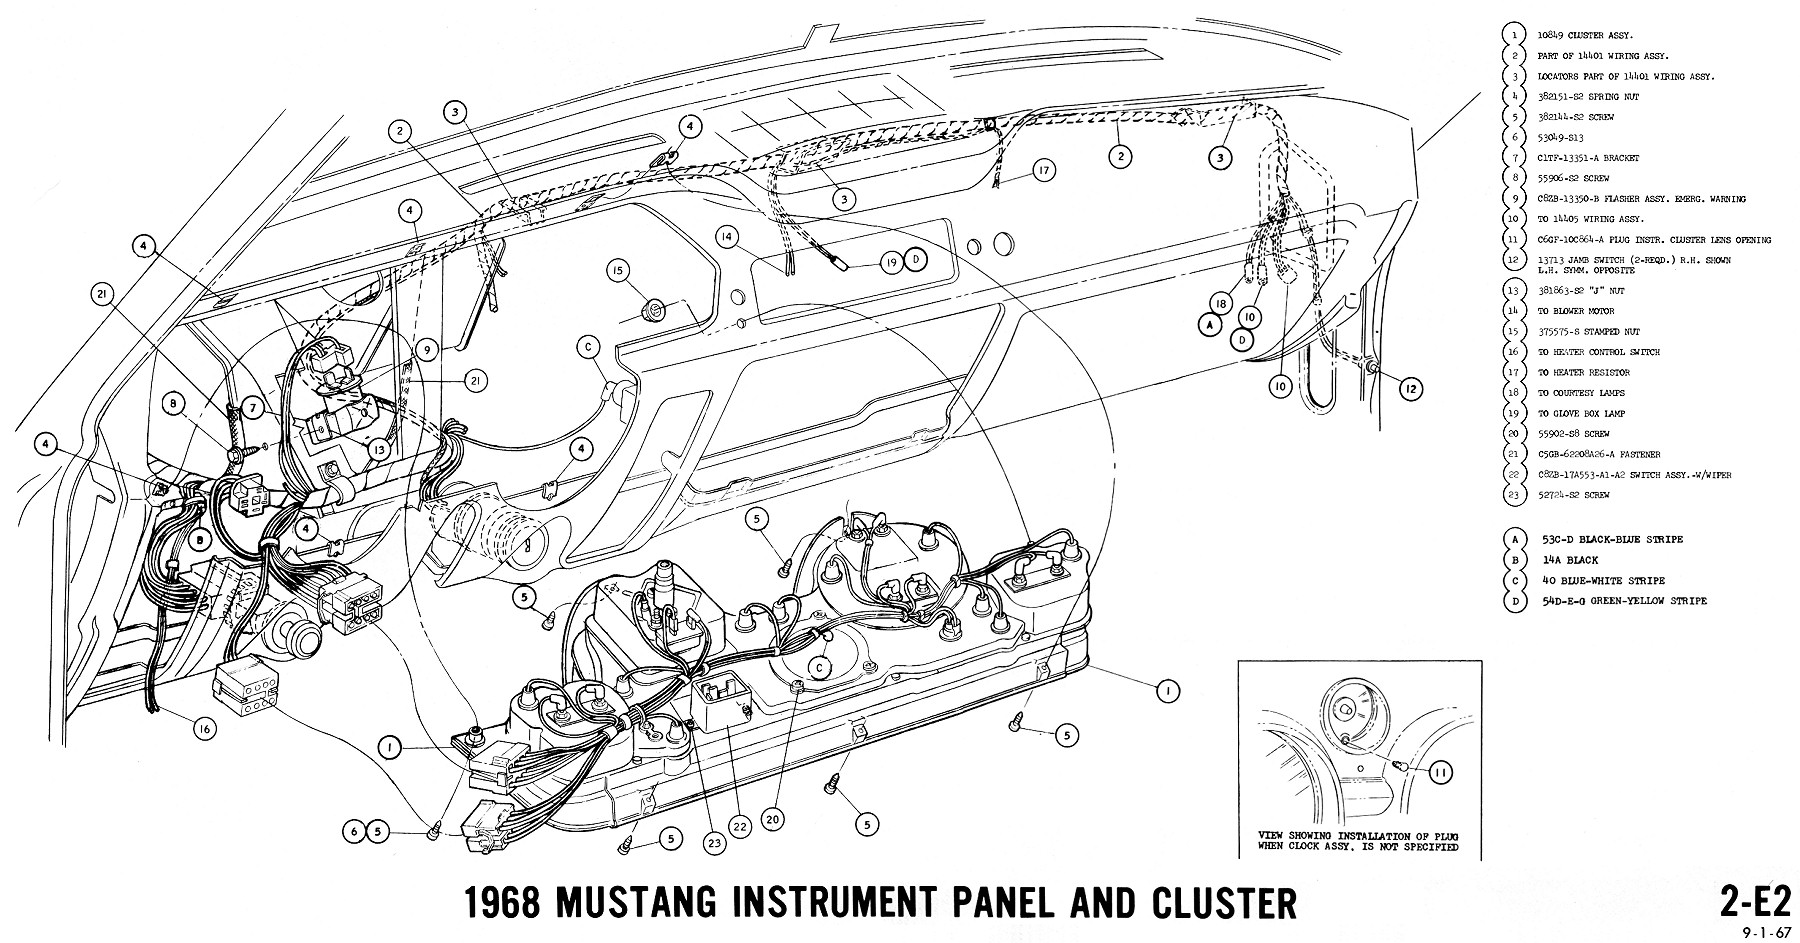 1968 mustang wiring harness diagram 1968 ford mustang instrument 1968 mustang wiring diagrams and vacuum schematics average joe 1968 mustang alternator wiring diagram 1968 mustang asfbconference2016 Image collections